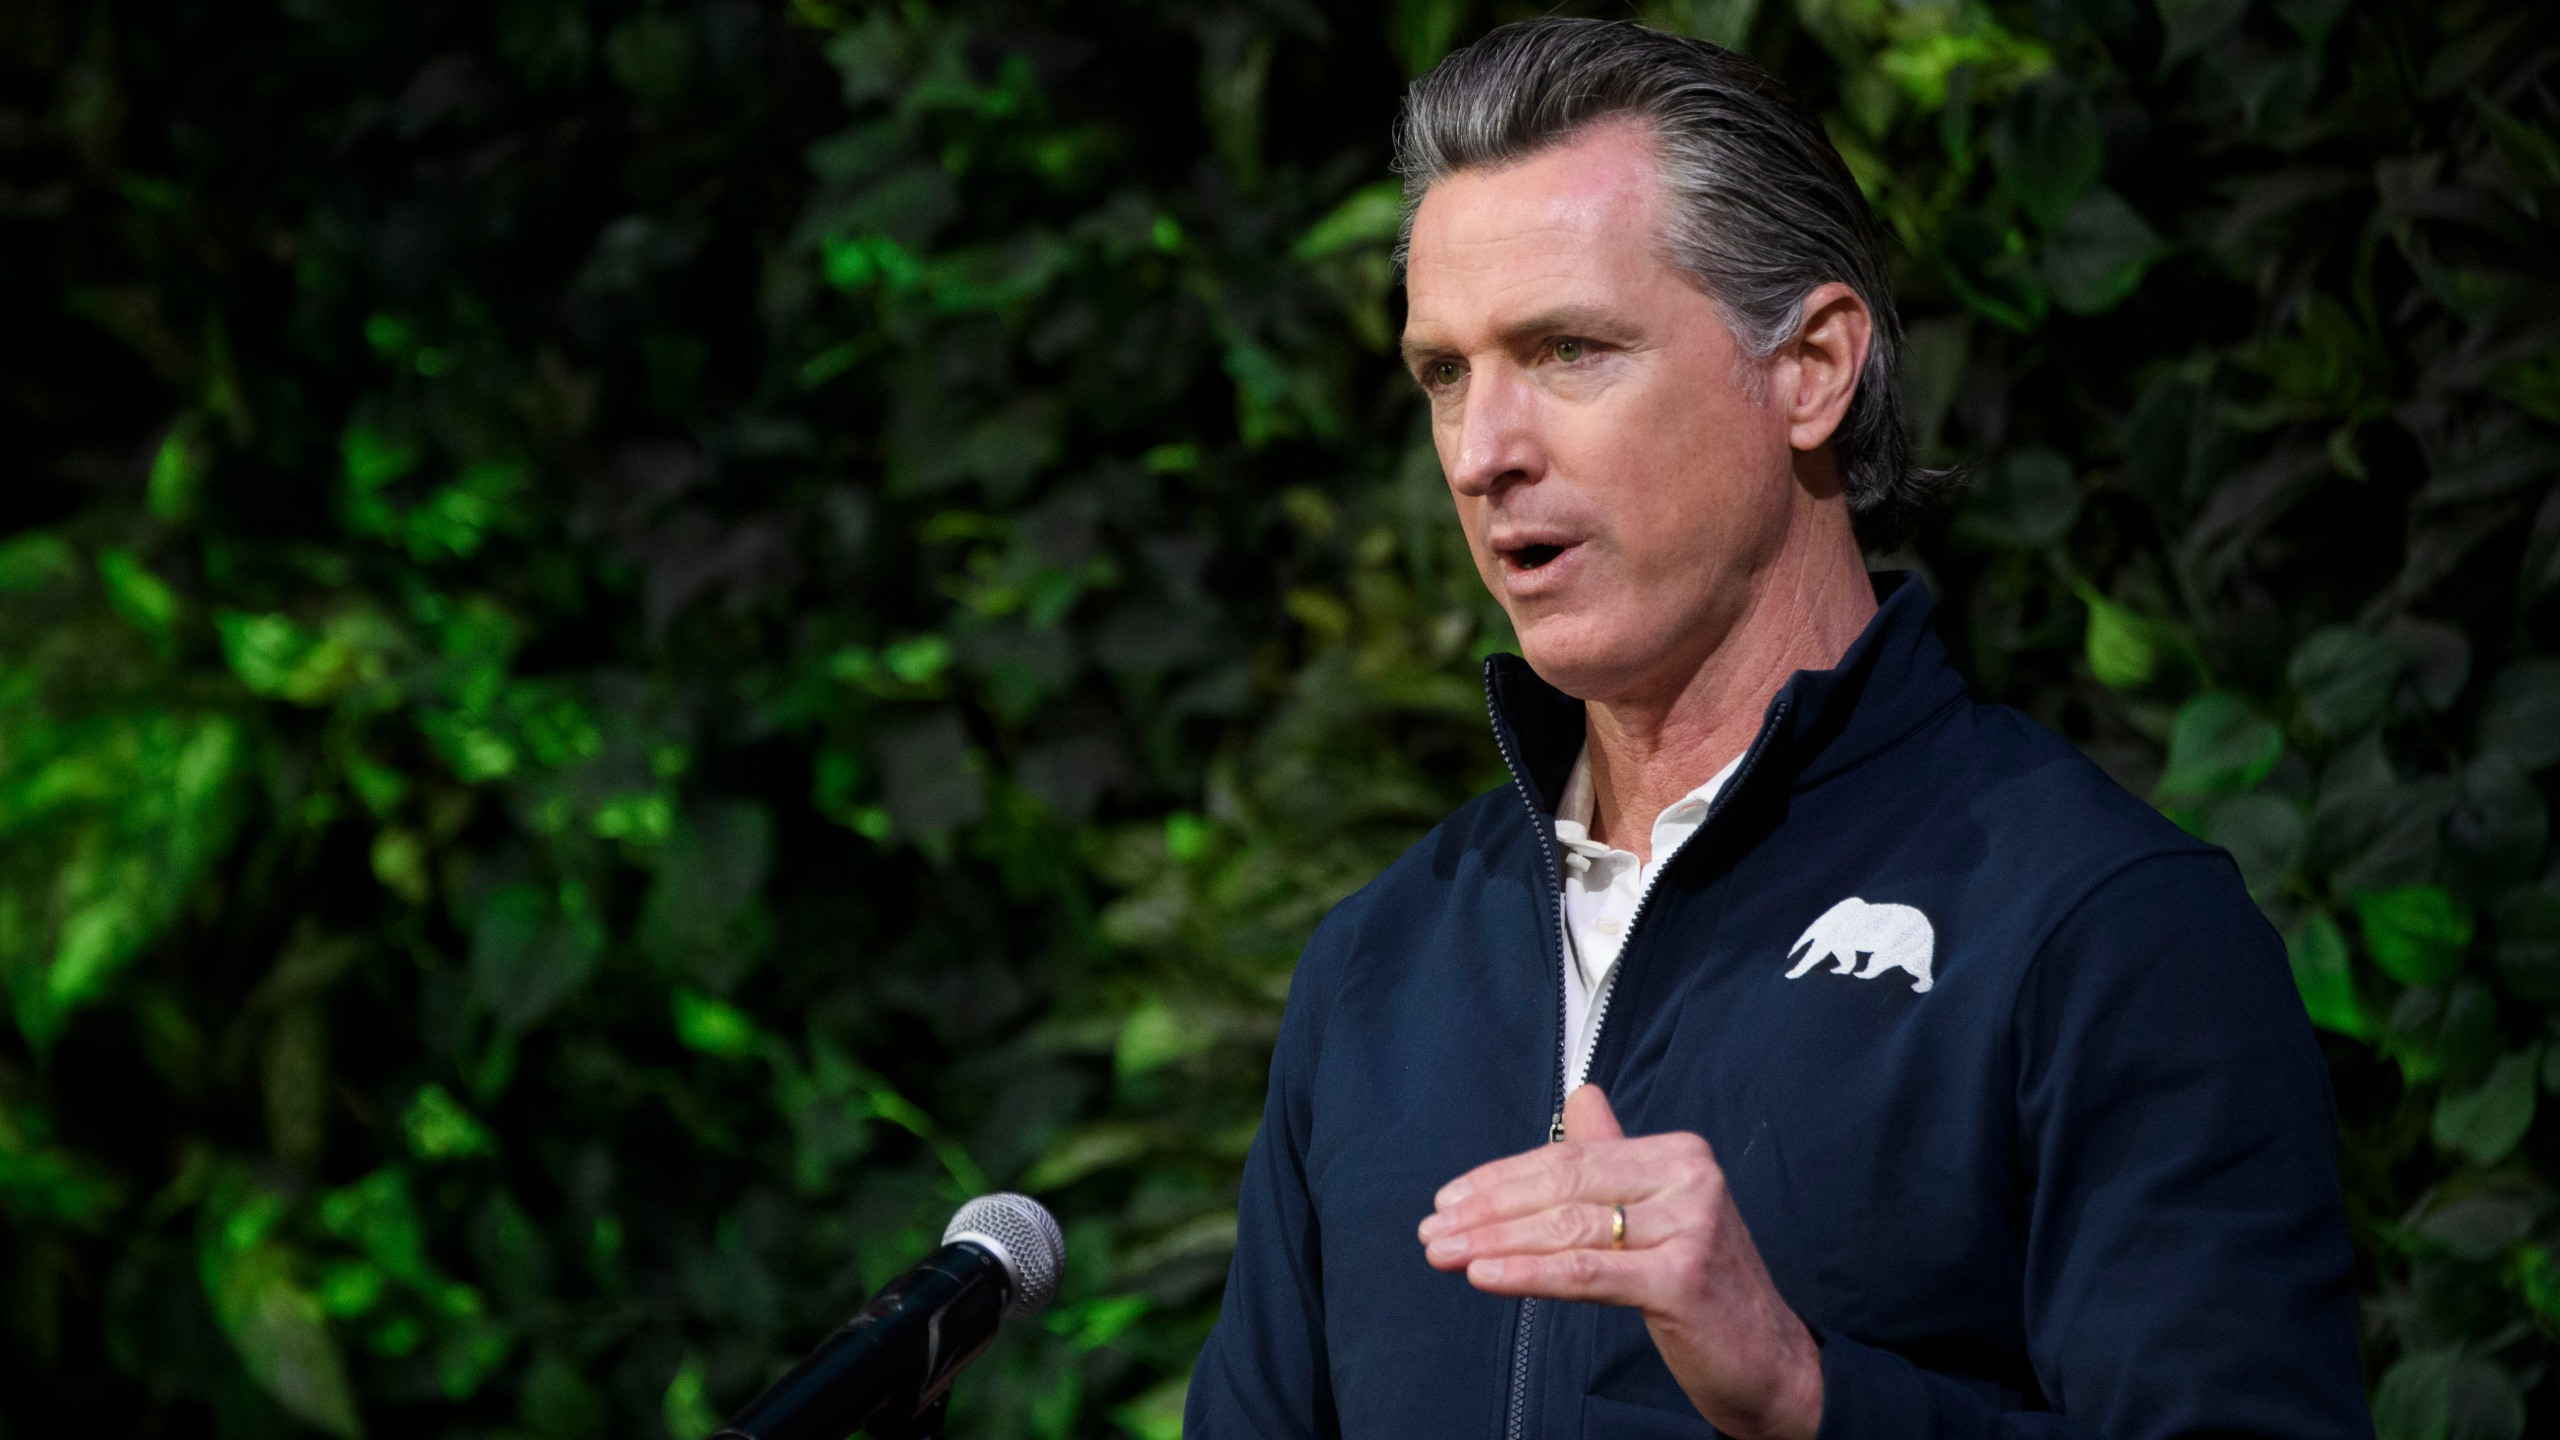 California Gov. Gavin Newsom speaks after touring a COVID-19 vaccination site in Long Beach on Feb. 22, 2021. (Patrick T. Fallon / AFP / Getty Images)